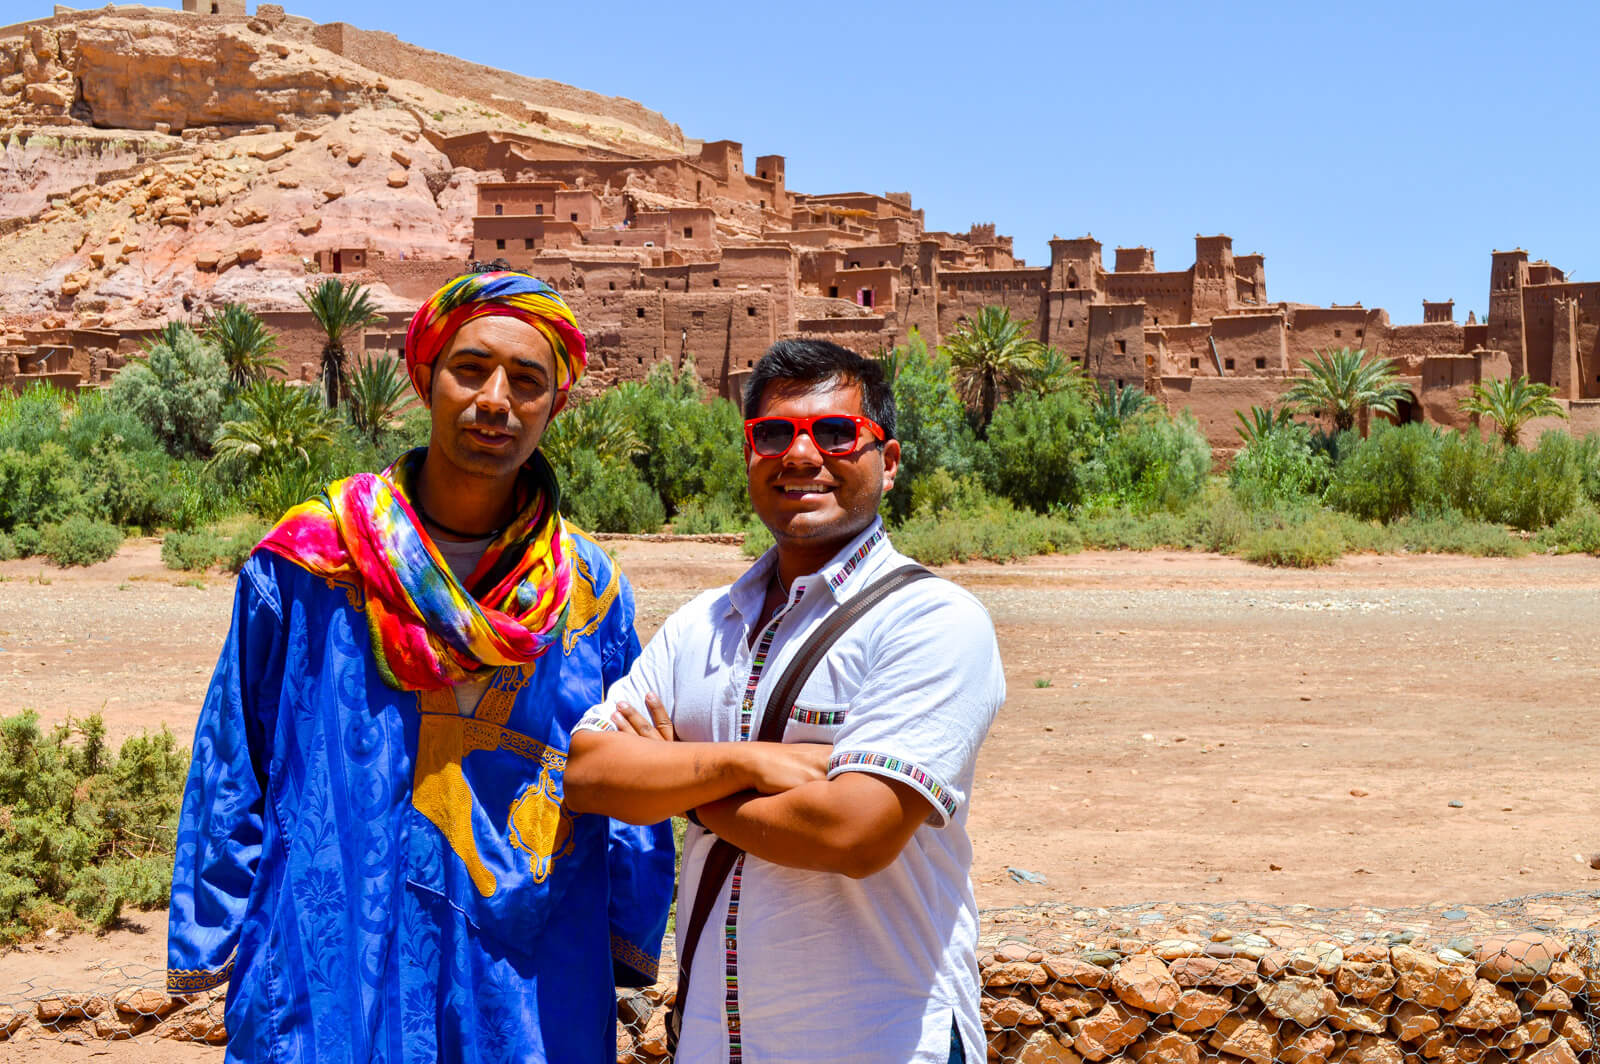 Hanging out with my Bedouin Bro at Ait Benhaddou